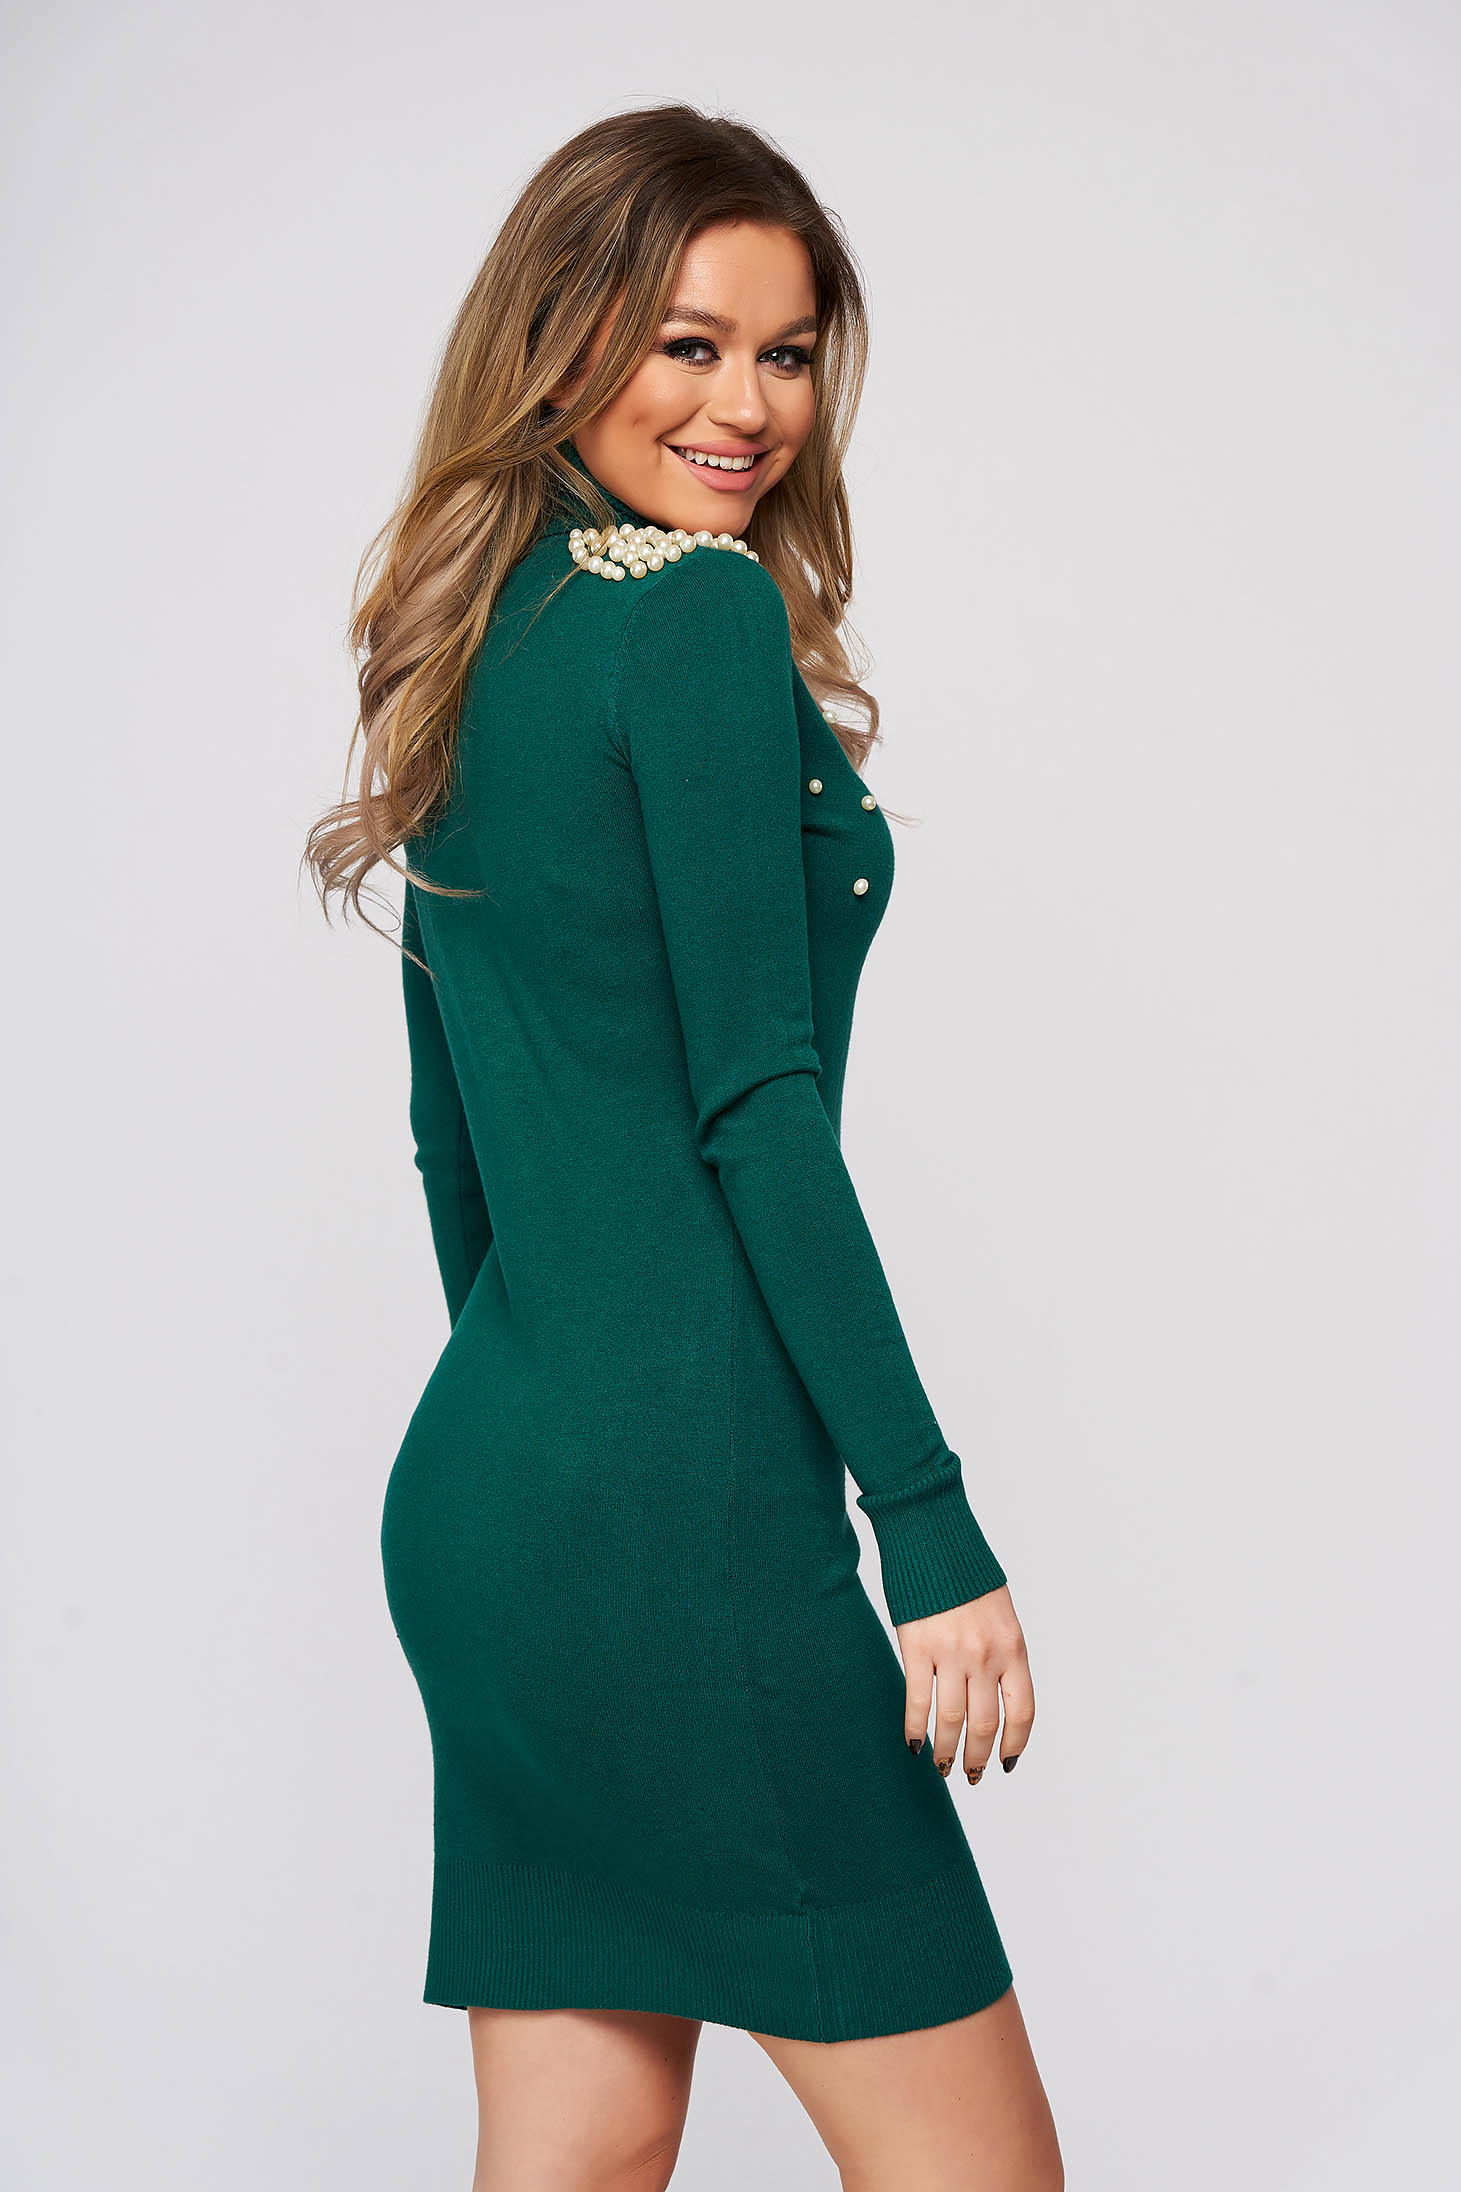 Dirty green dress with pearls with tented cut short cut knitted